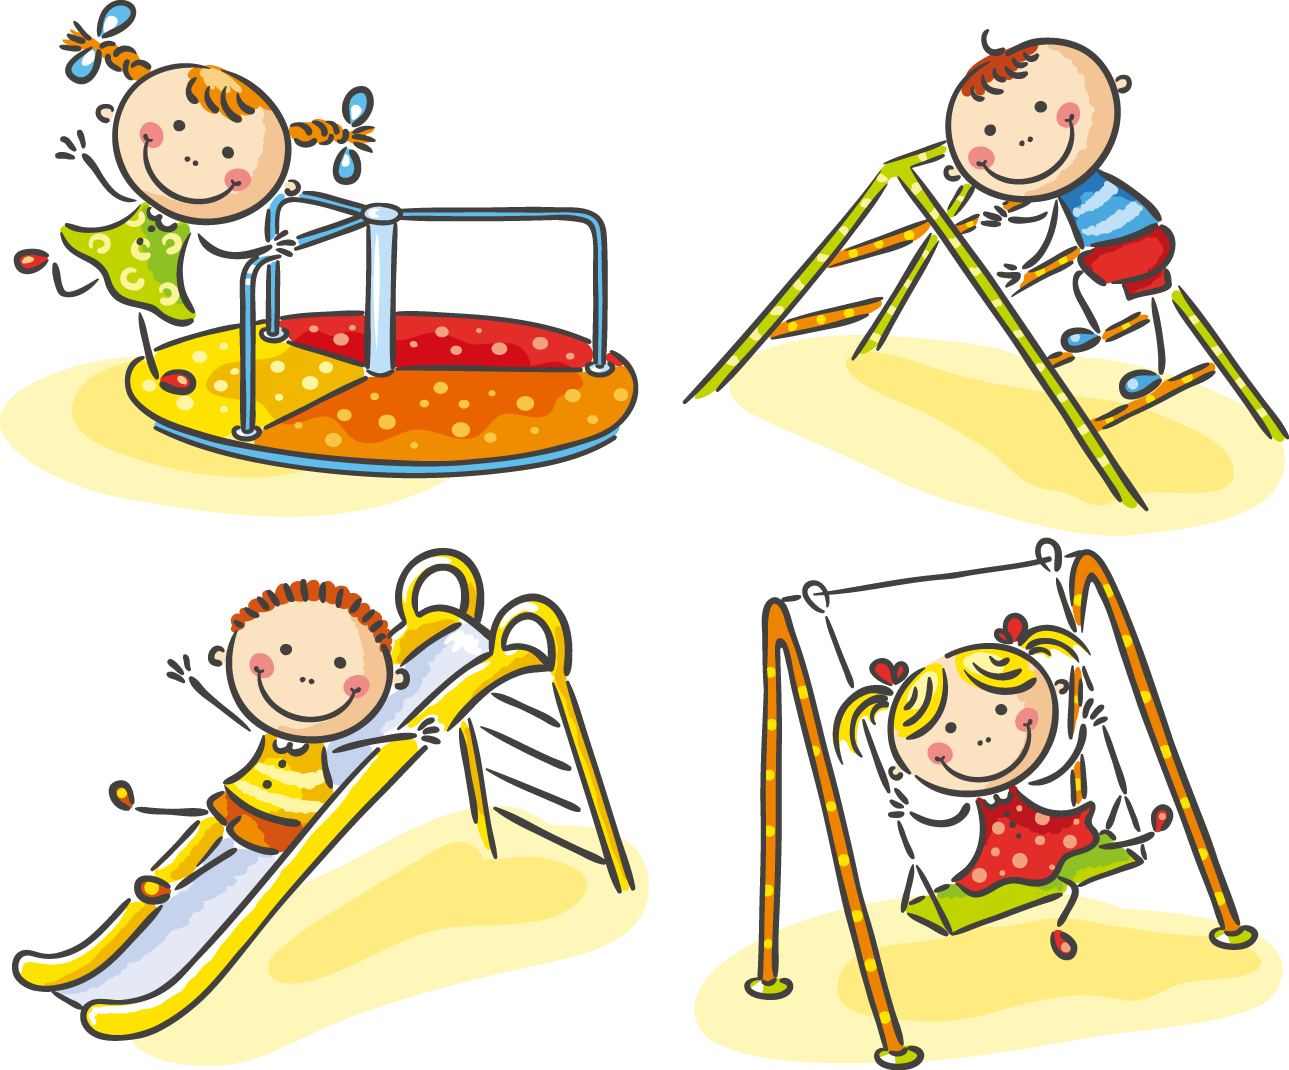 royalty free download Child stock photography cute. Kids playing on playground clipart